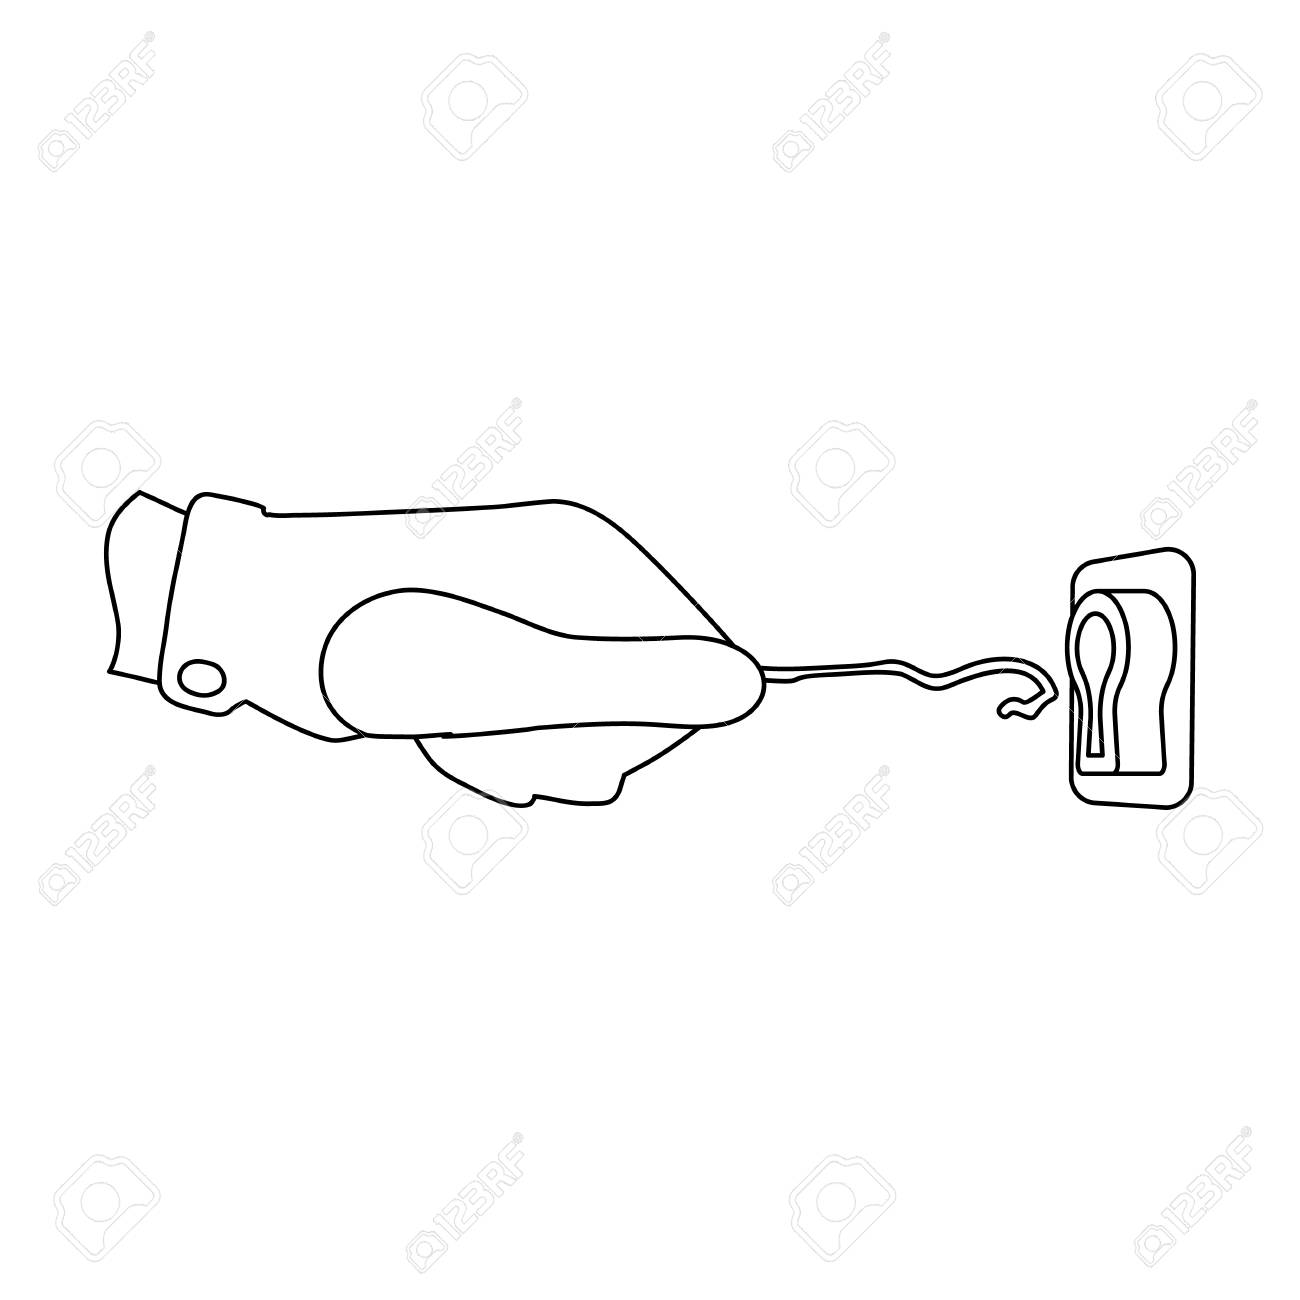 hight resolution of lockpick in the hand of the criminal latchkey thief tool crime single icon